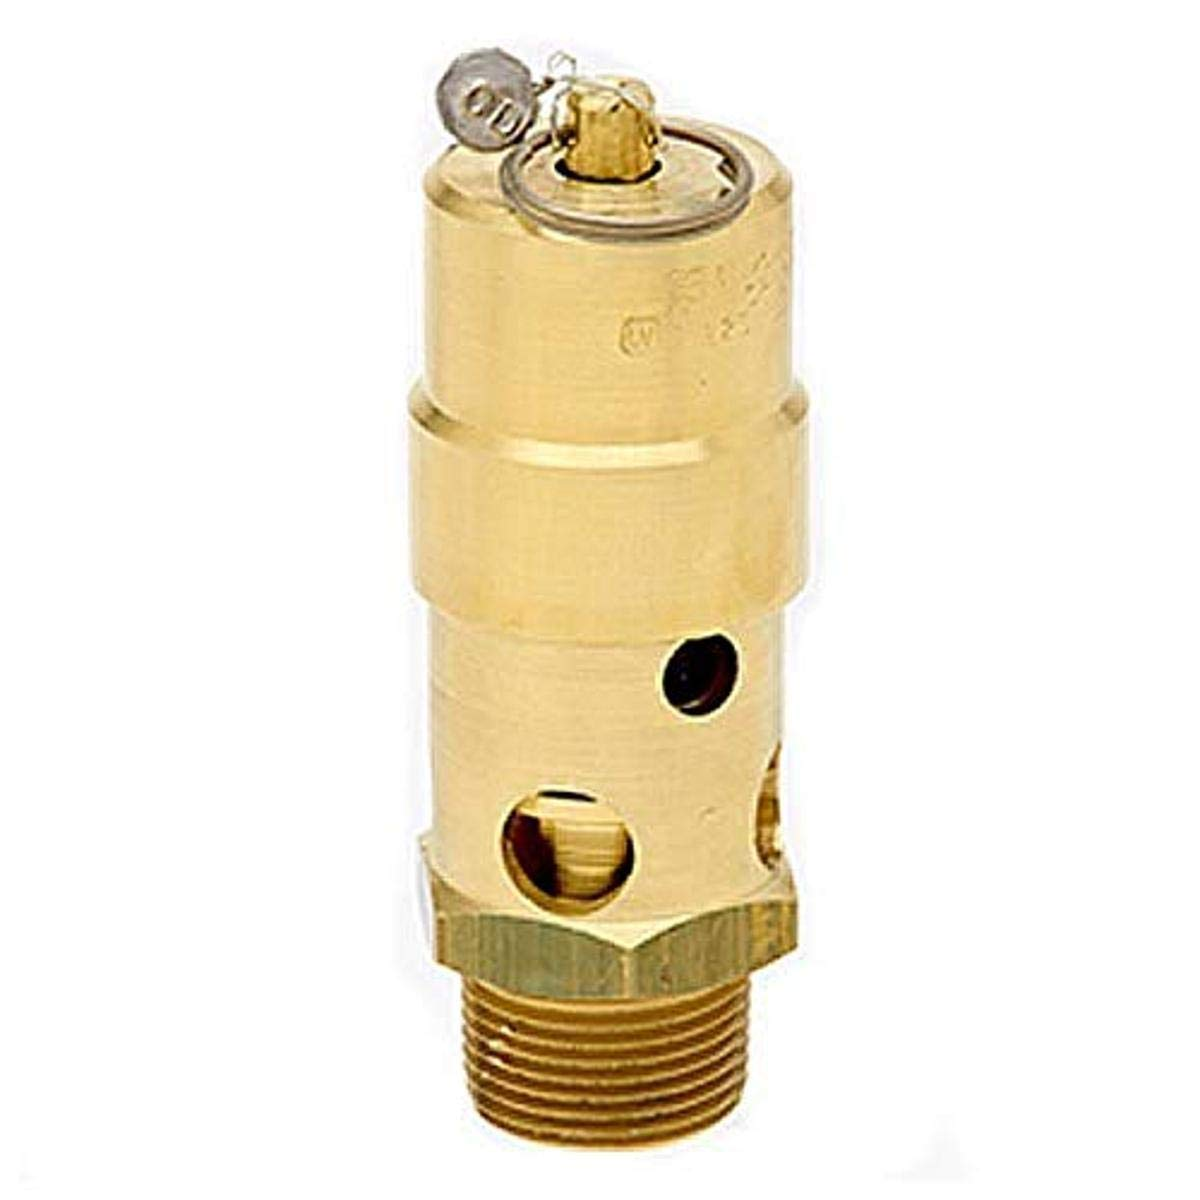 Midwest Control SW12-115 ASME Soft Seat Safety Valve, 115 psi, 1-1/4